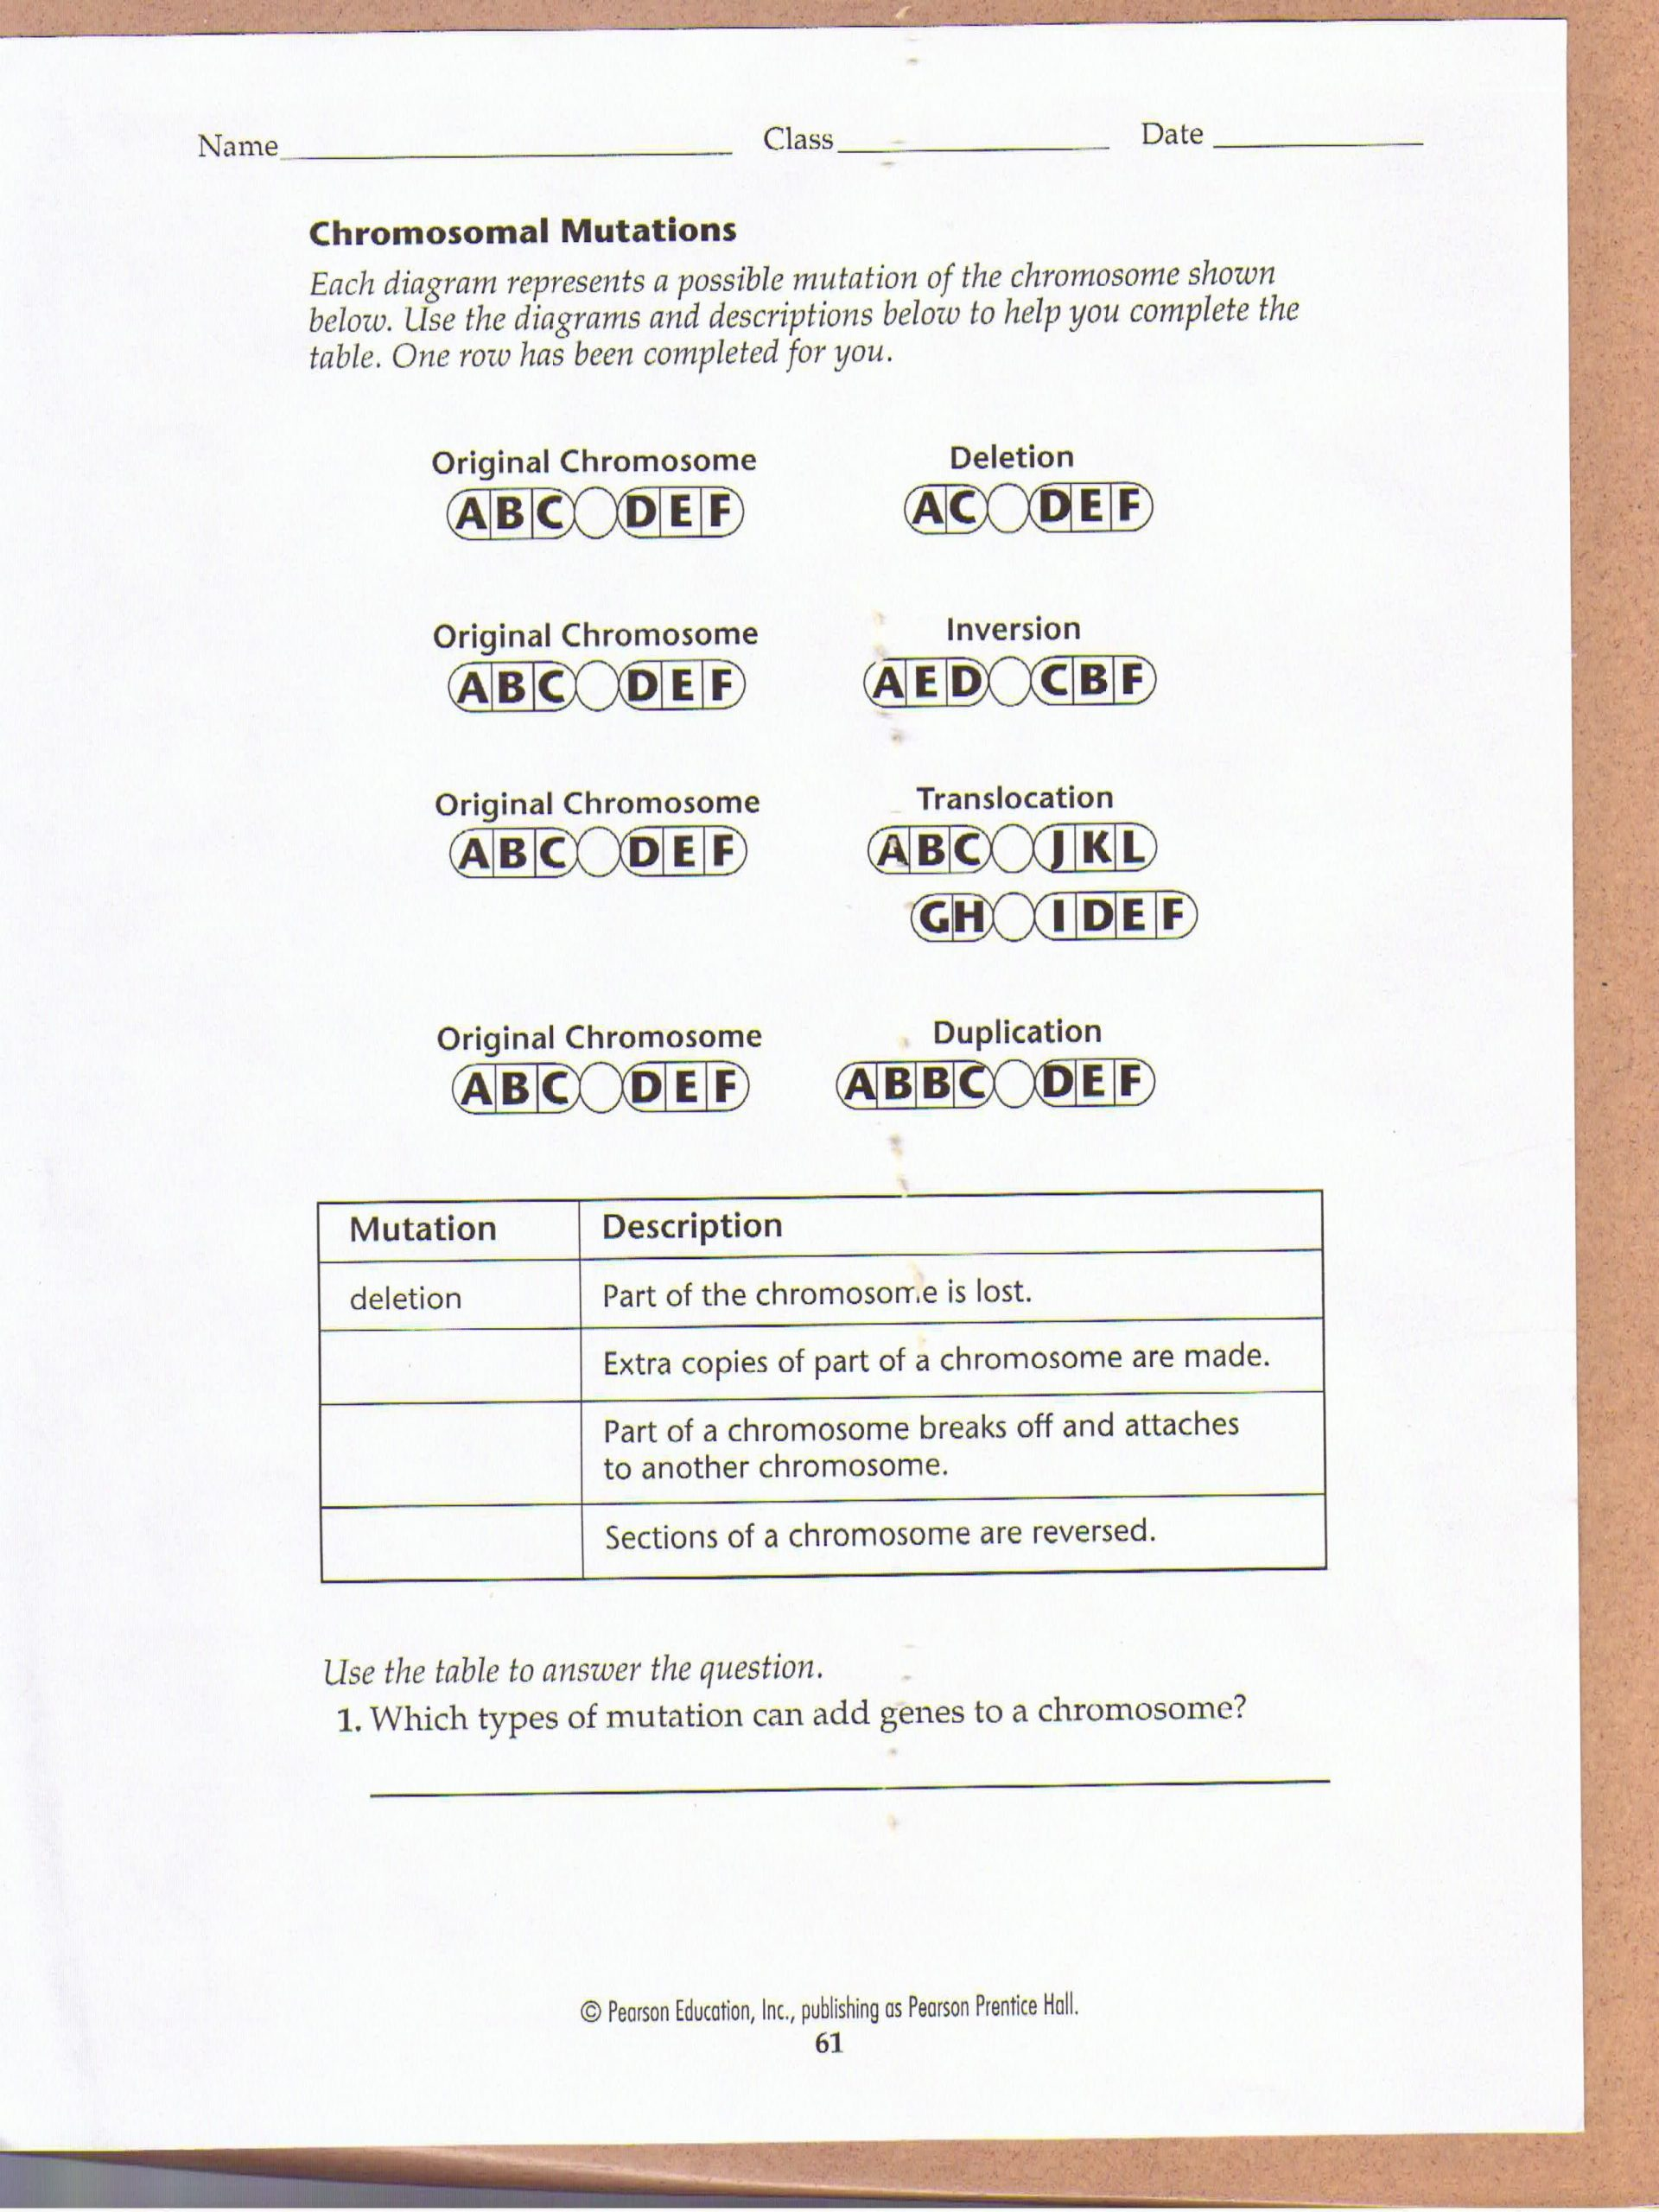 9th Grade Biology Worksheets Chromosomal Mutations Worksheet